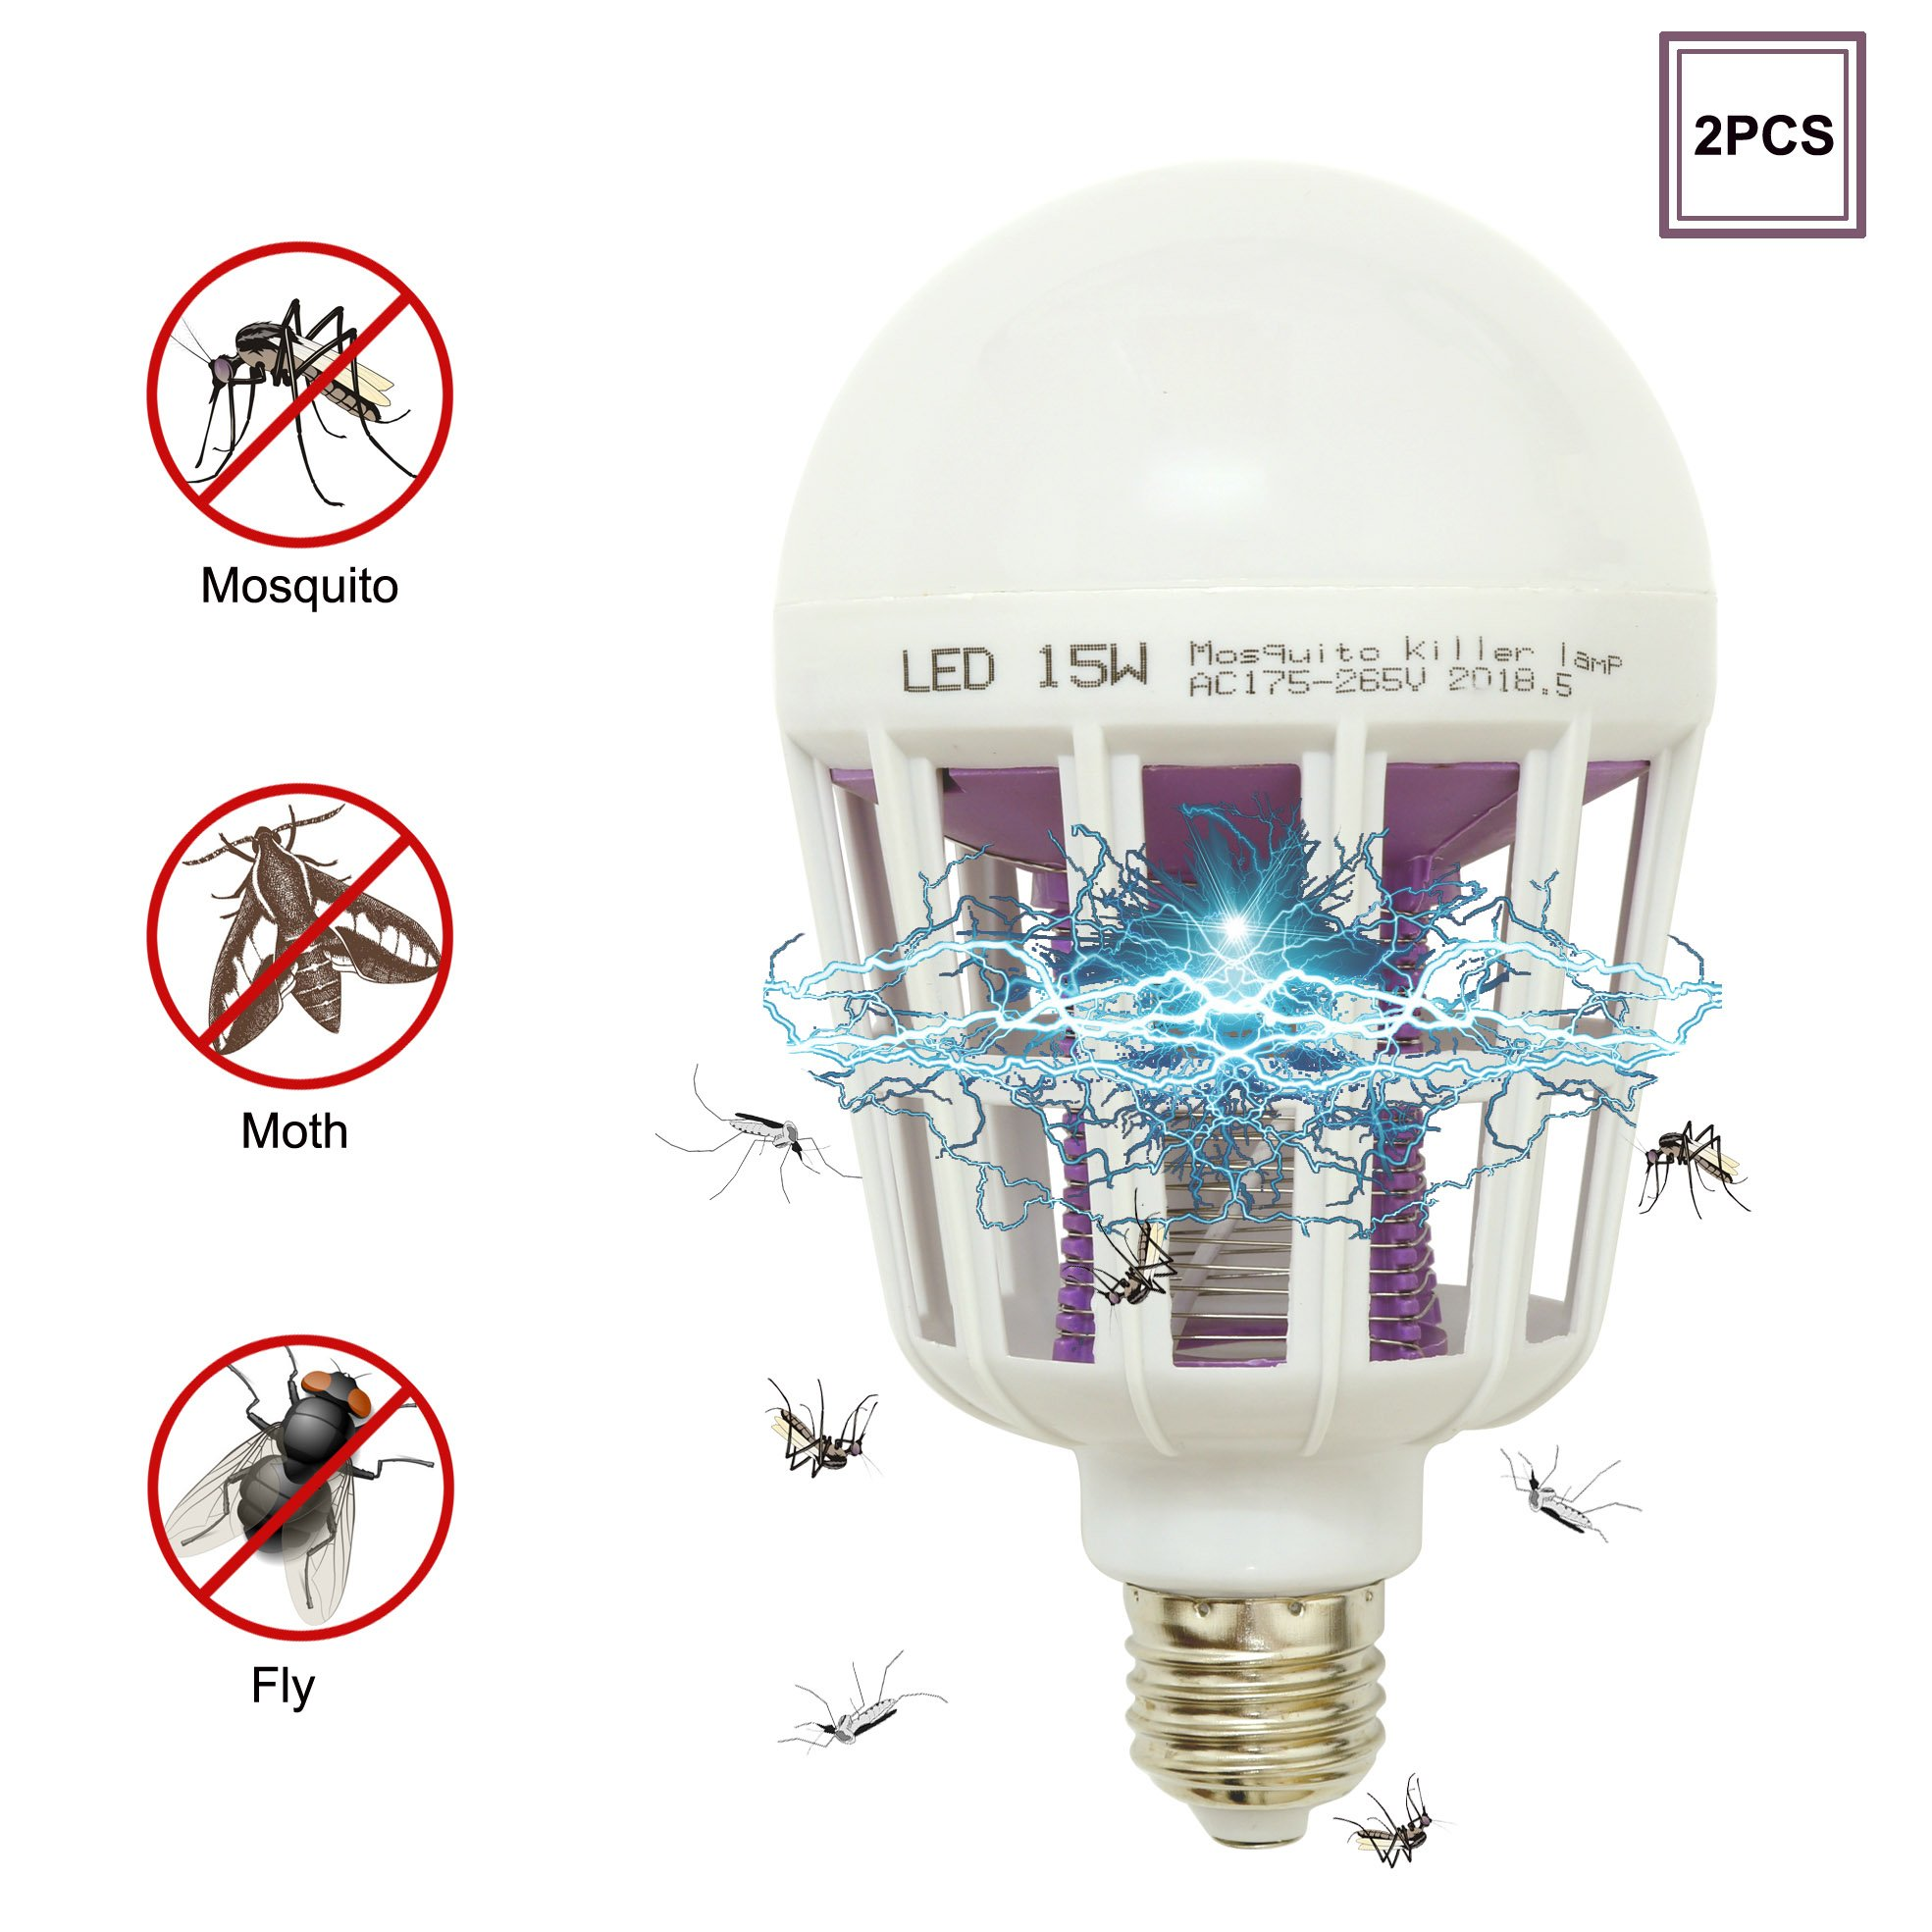 DarNio Mosquito Bug Zapper Light Bulb, E26/E27 Electronic Insect Killer Lamp, Built in Mosquito Trap for Indoor Porch Patio, Fit in 110V Light Bulb Socket 2PCS by DarNio